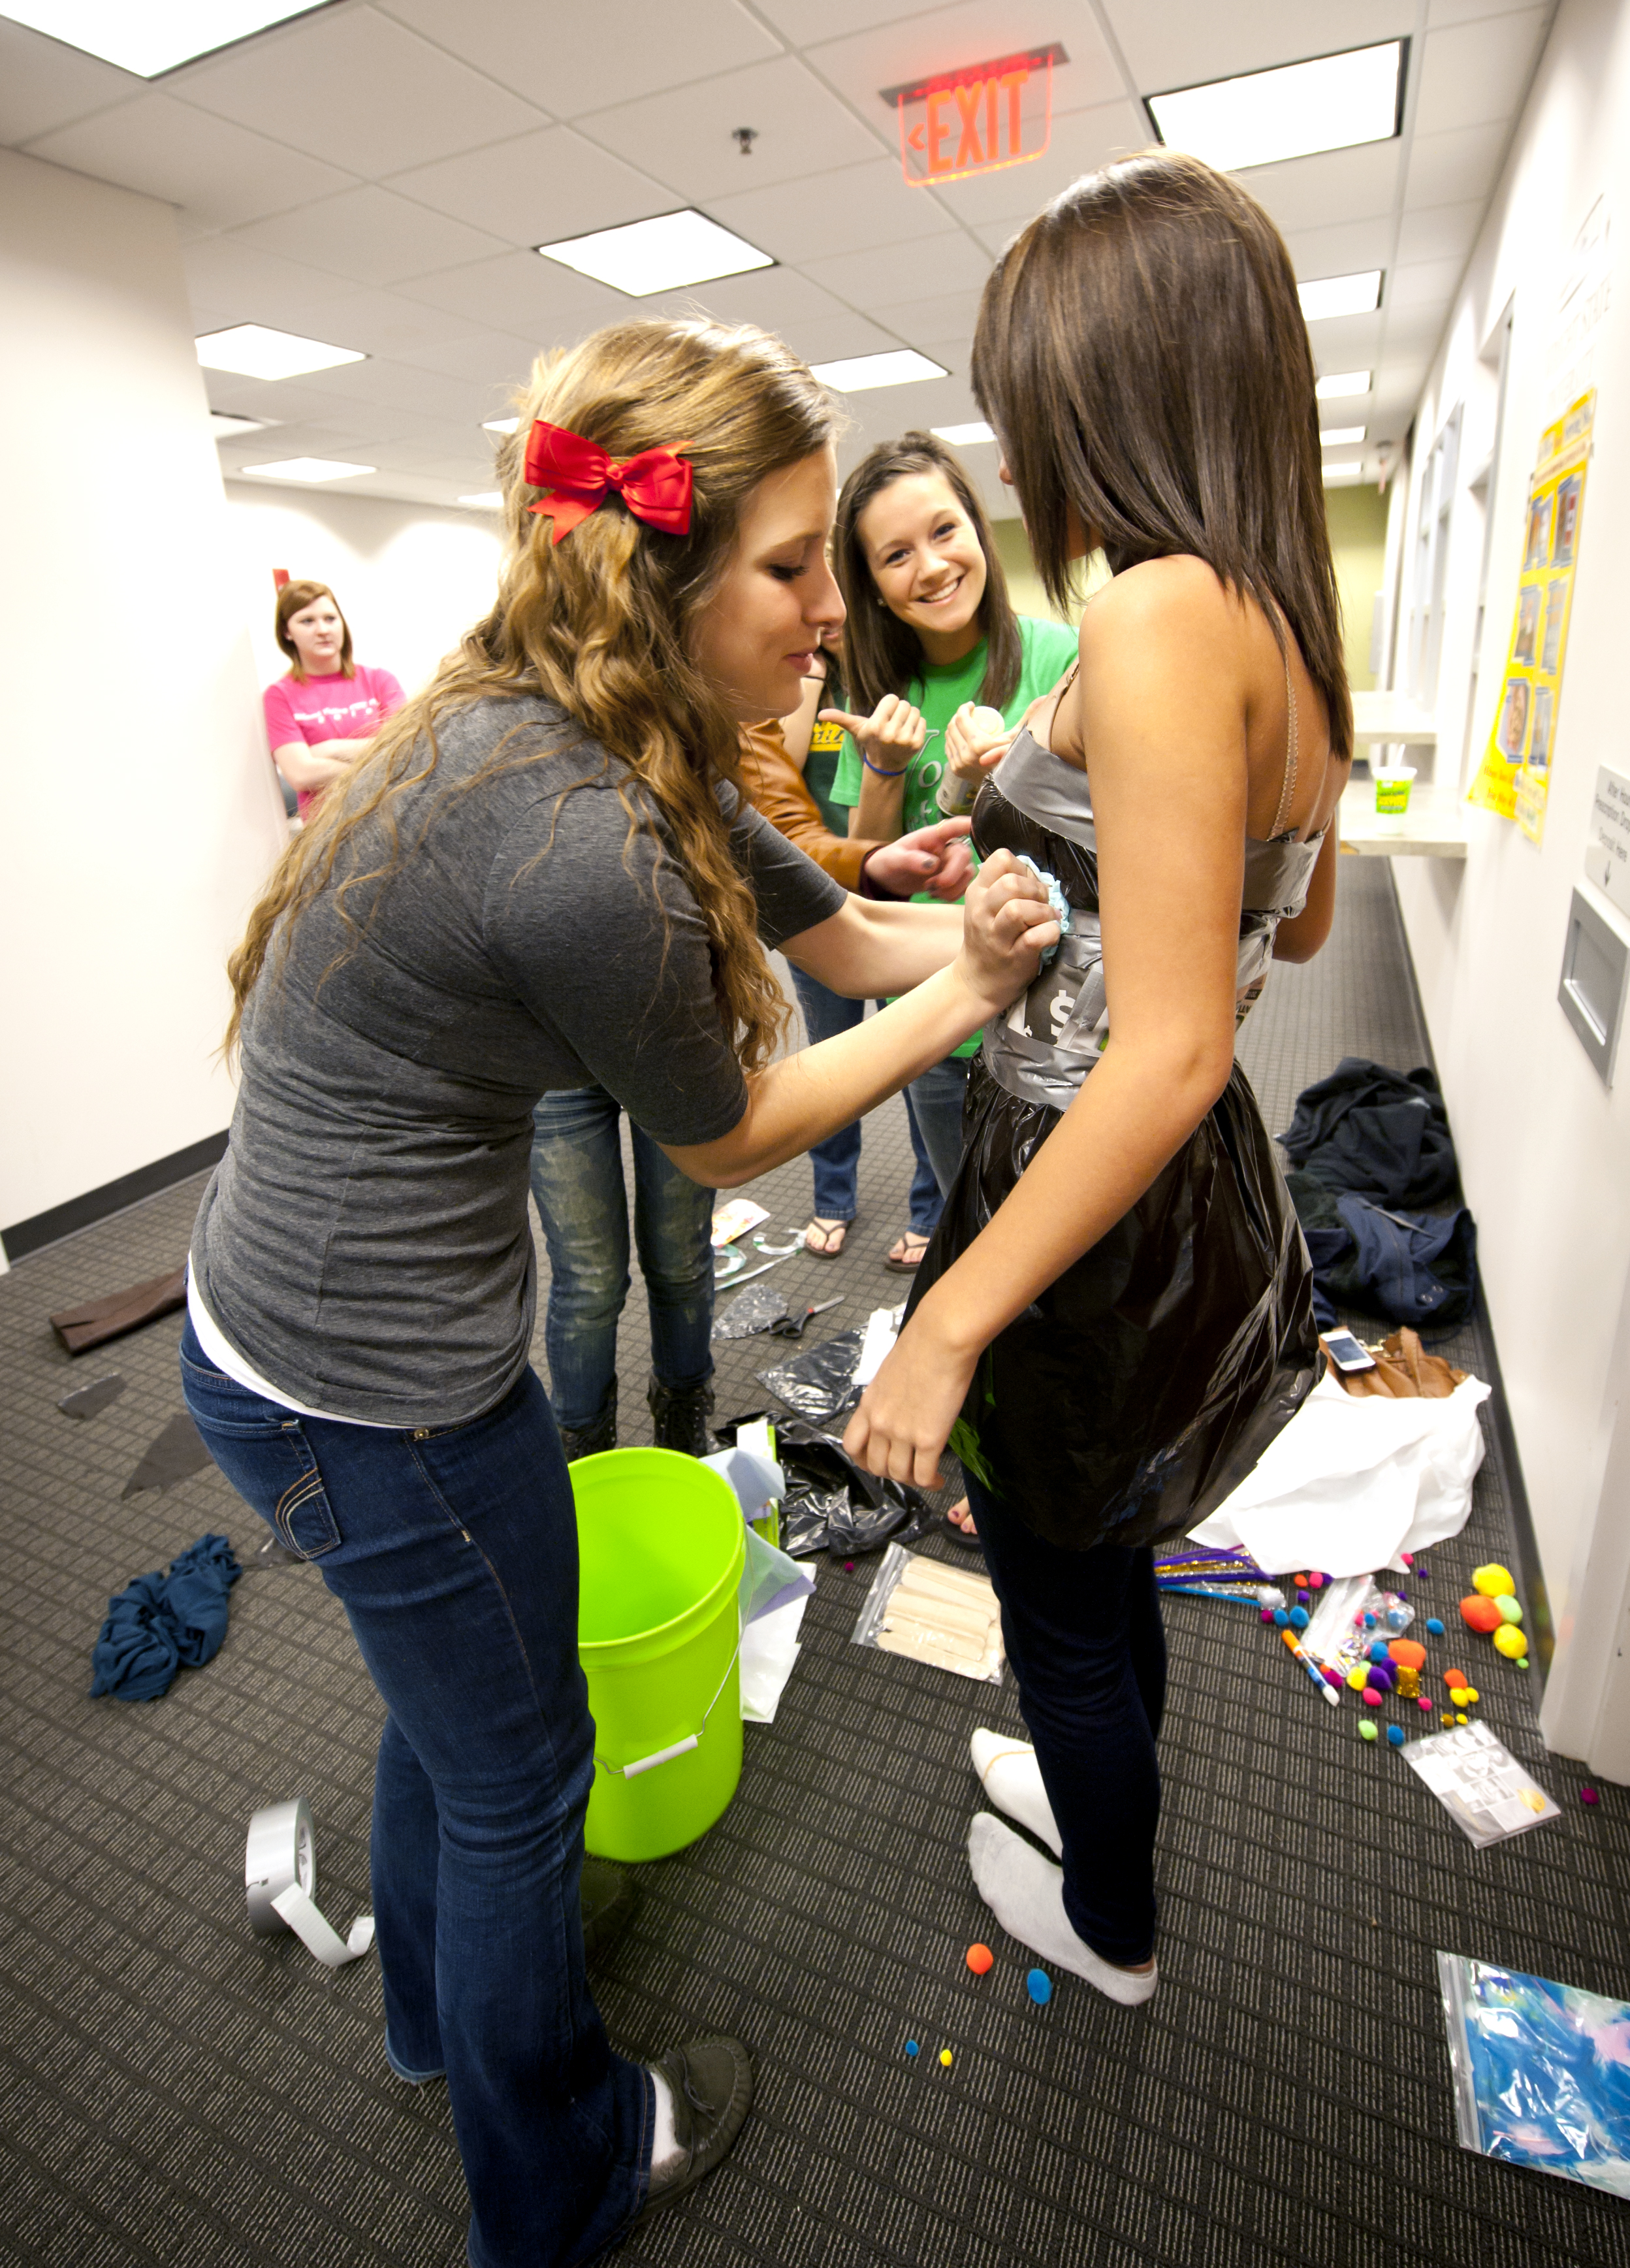 Photo of one student putting duct tape and newspaper on another student.